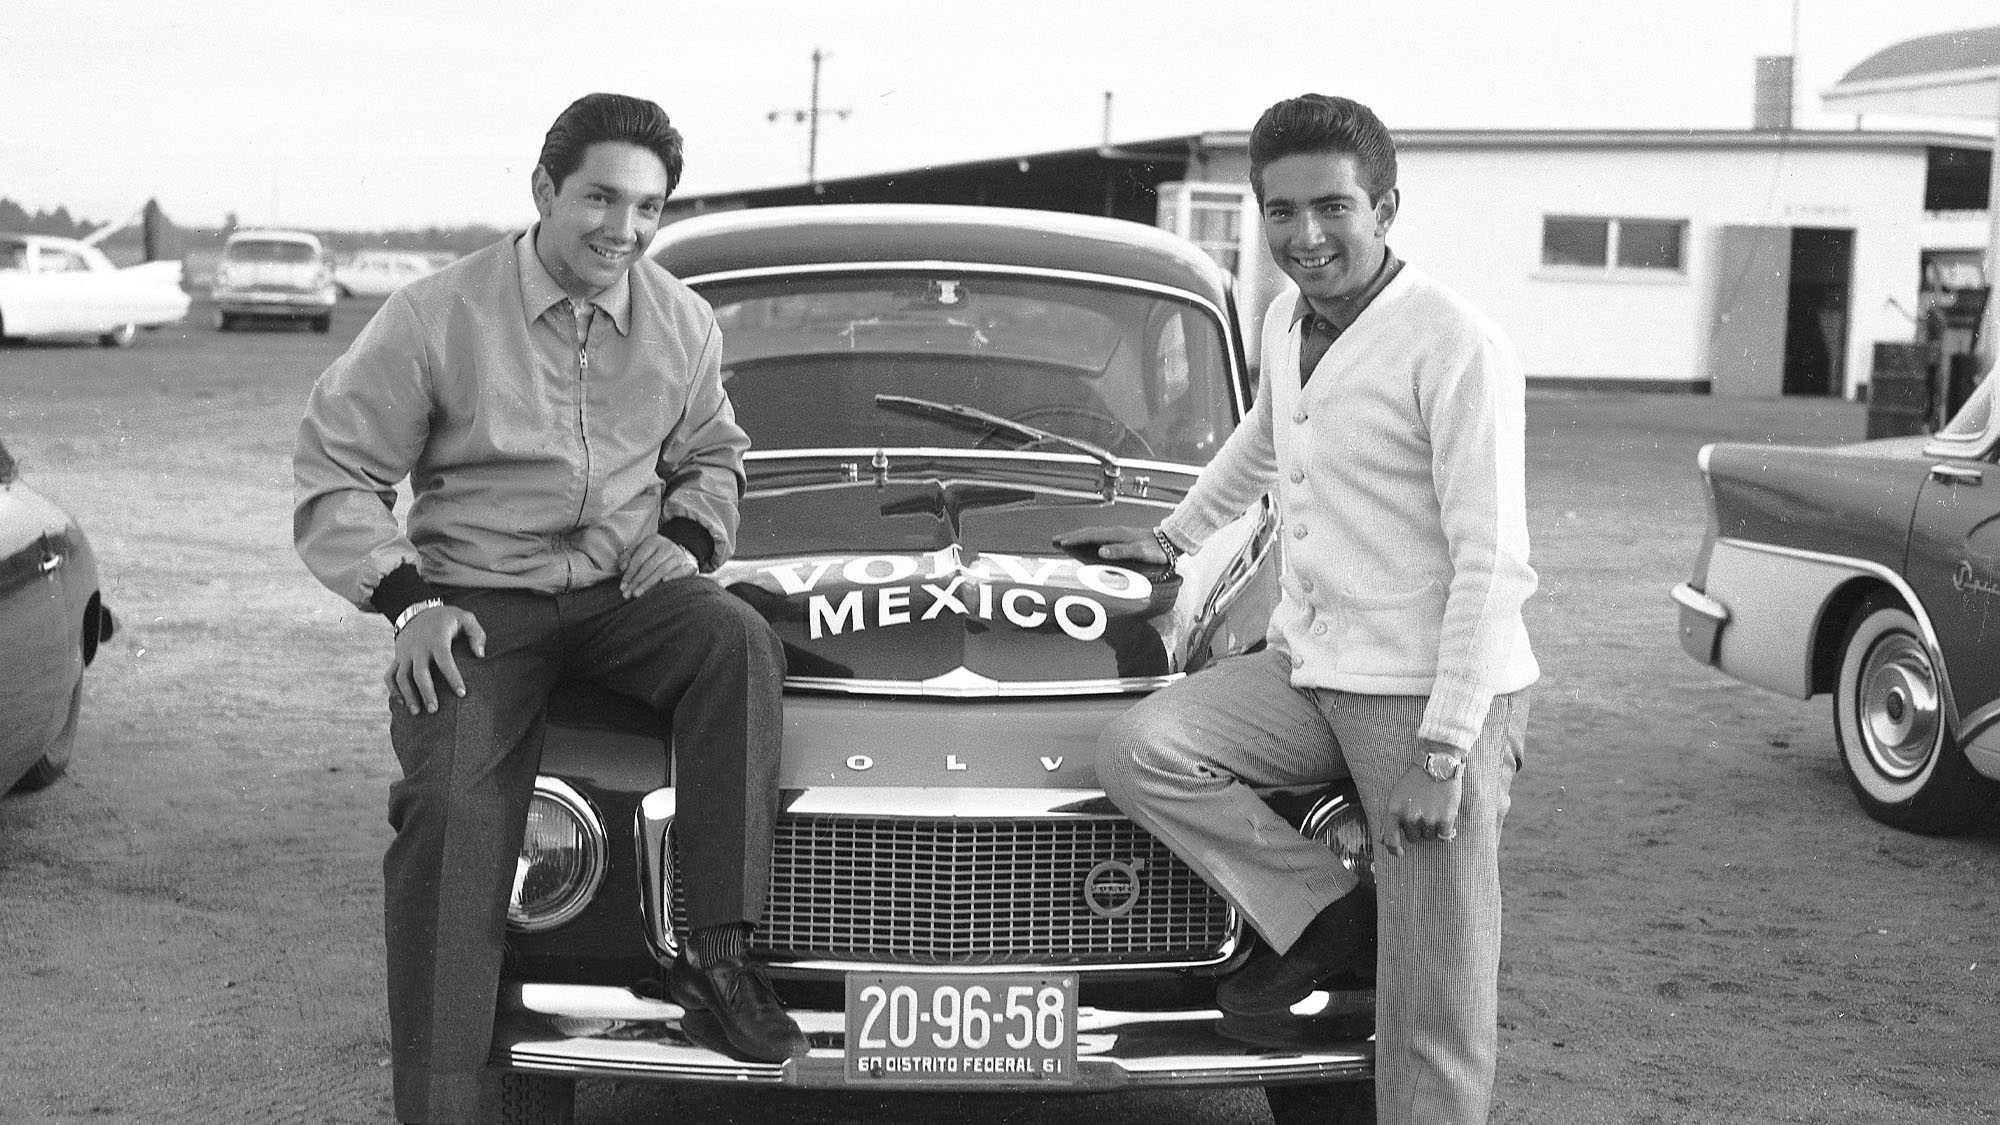 DAYTONA BEACH, FL - JANUARY 25, 1960: Brothers Pedro (L) and Ricardo Rodriguez (R) with the Volvo of Mexico entry for the twin Compact Car races that were held at Daytona International Speedway on January 31, 1960. Pedro actually drove the Volvo in the races, while Ricardo was behind the wheel of a Chevrolet Corvair. (Photo by ISC Images & Archives via Getty Images)